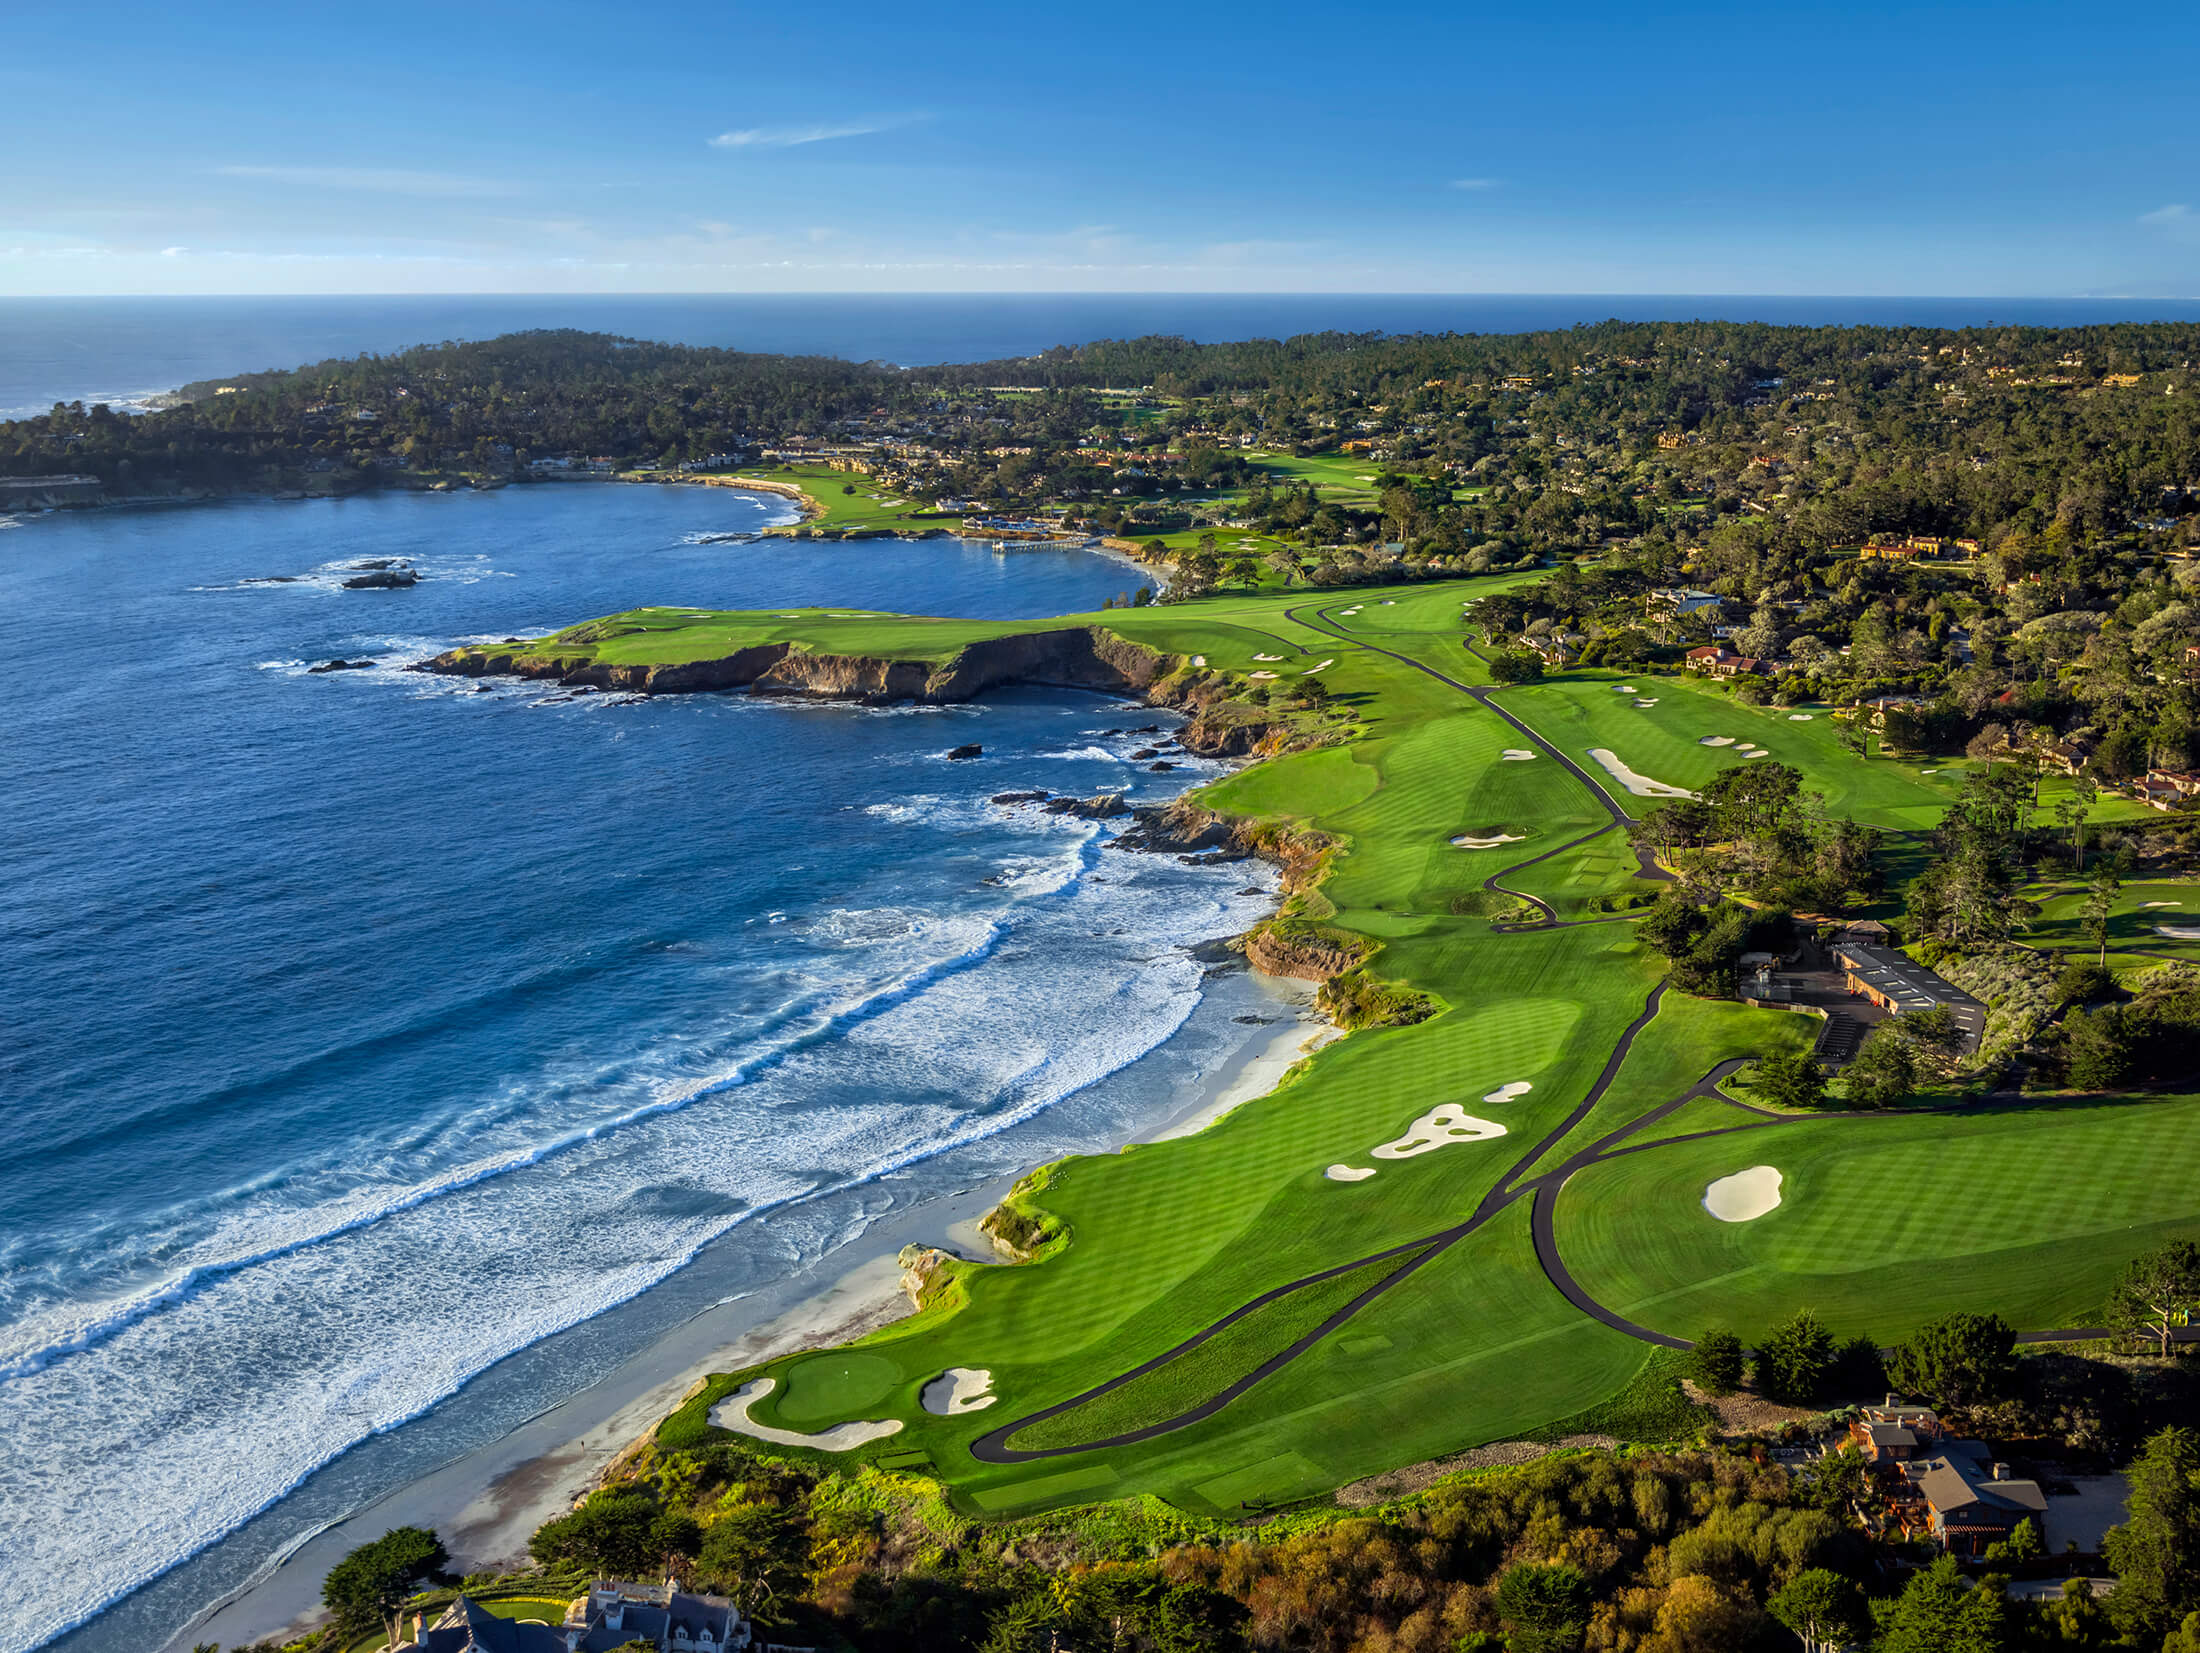 Campo Da Golf Palermo Pebble Beach Resorts Golf Resorts Courses Spa Vacations